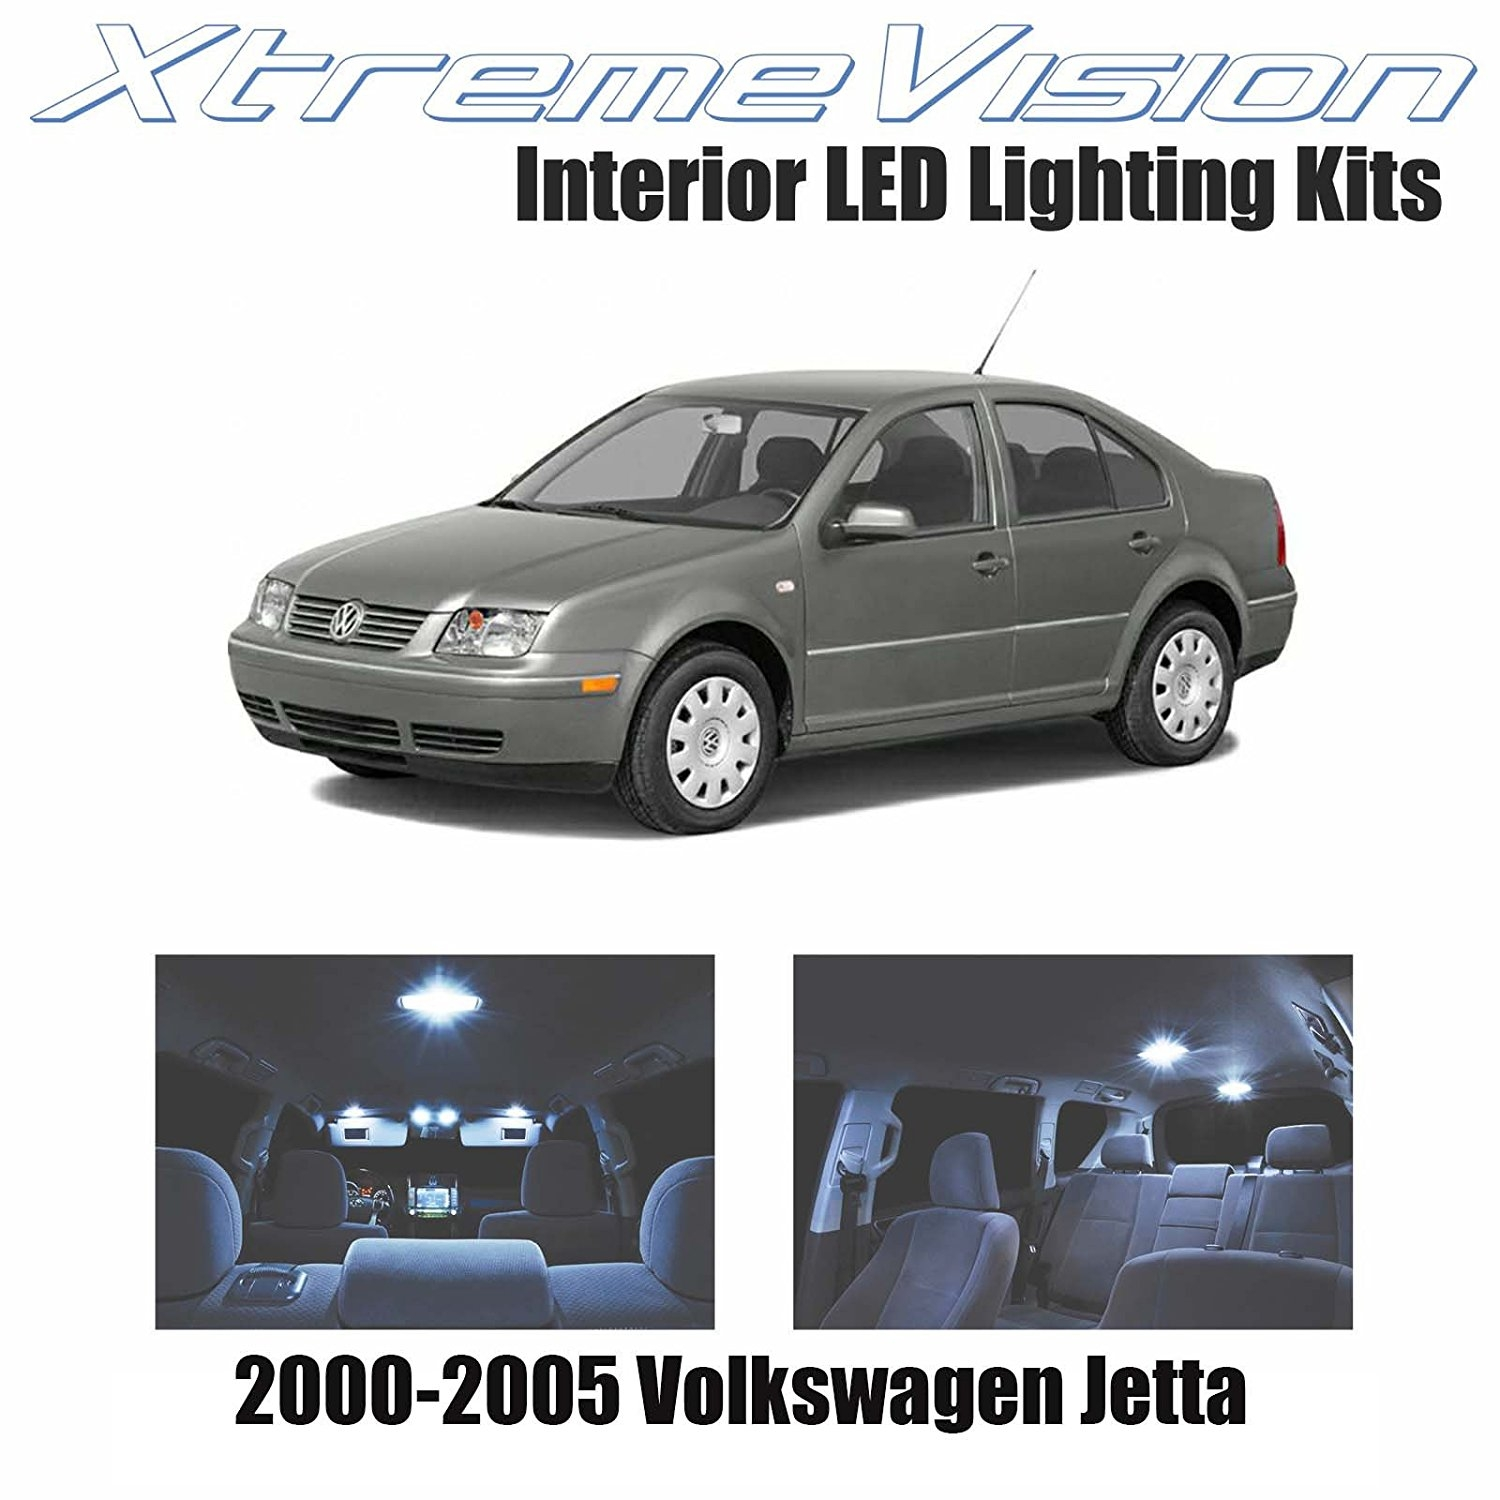 XtremeVision LED for Volkswagen Jetta 2000-2005 (9 Pieces) Cool White Premium Interior LED Kit Package + Installation Tool